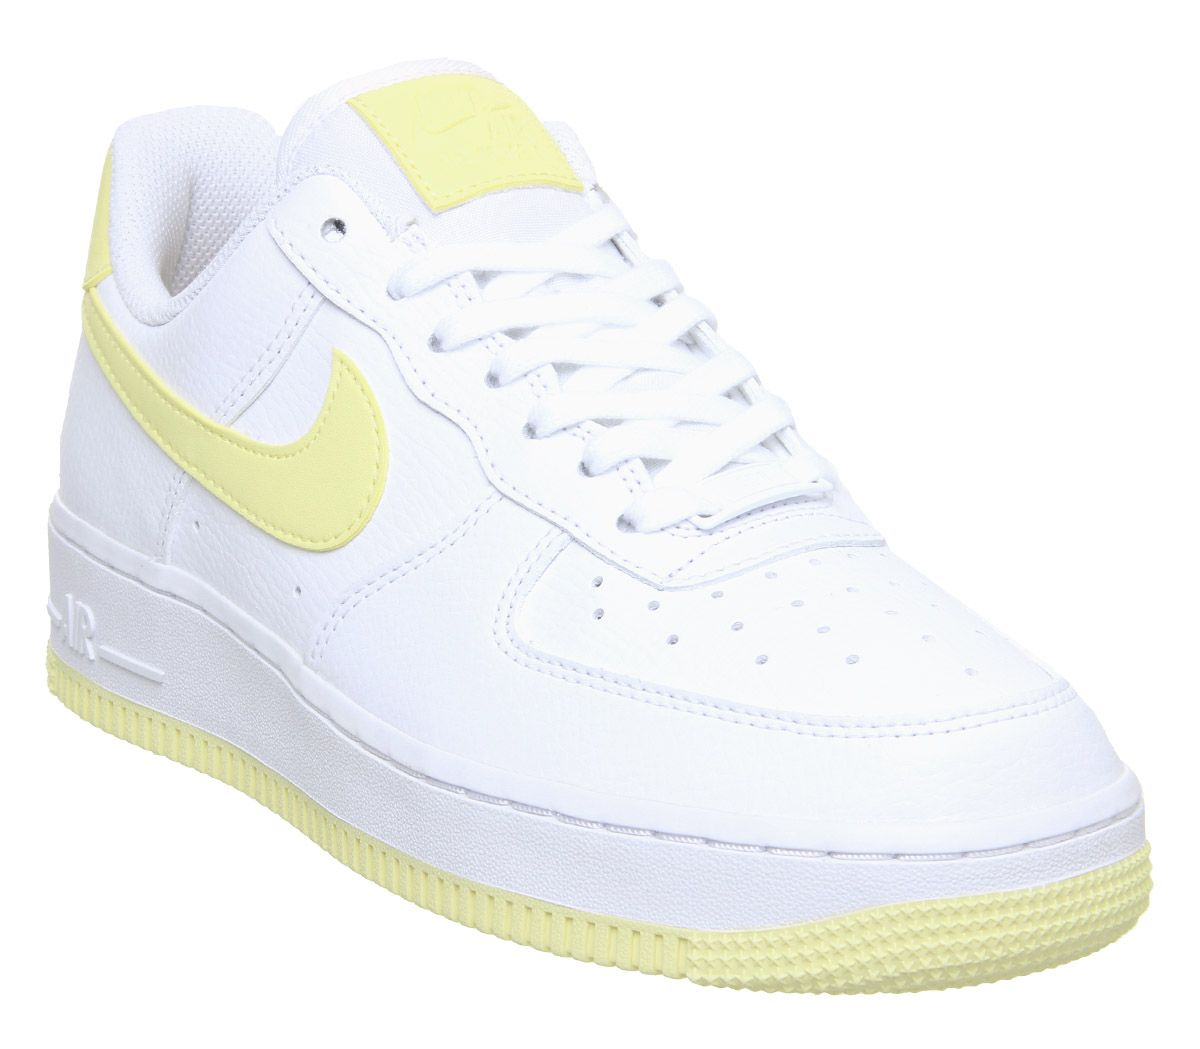 ef5b14be938283 Nike Air Force 1 07 Trainers White Bicycle Yellow Dark Sulfur - Hers ...